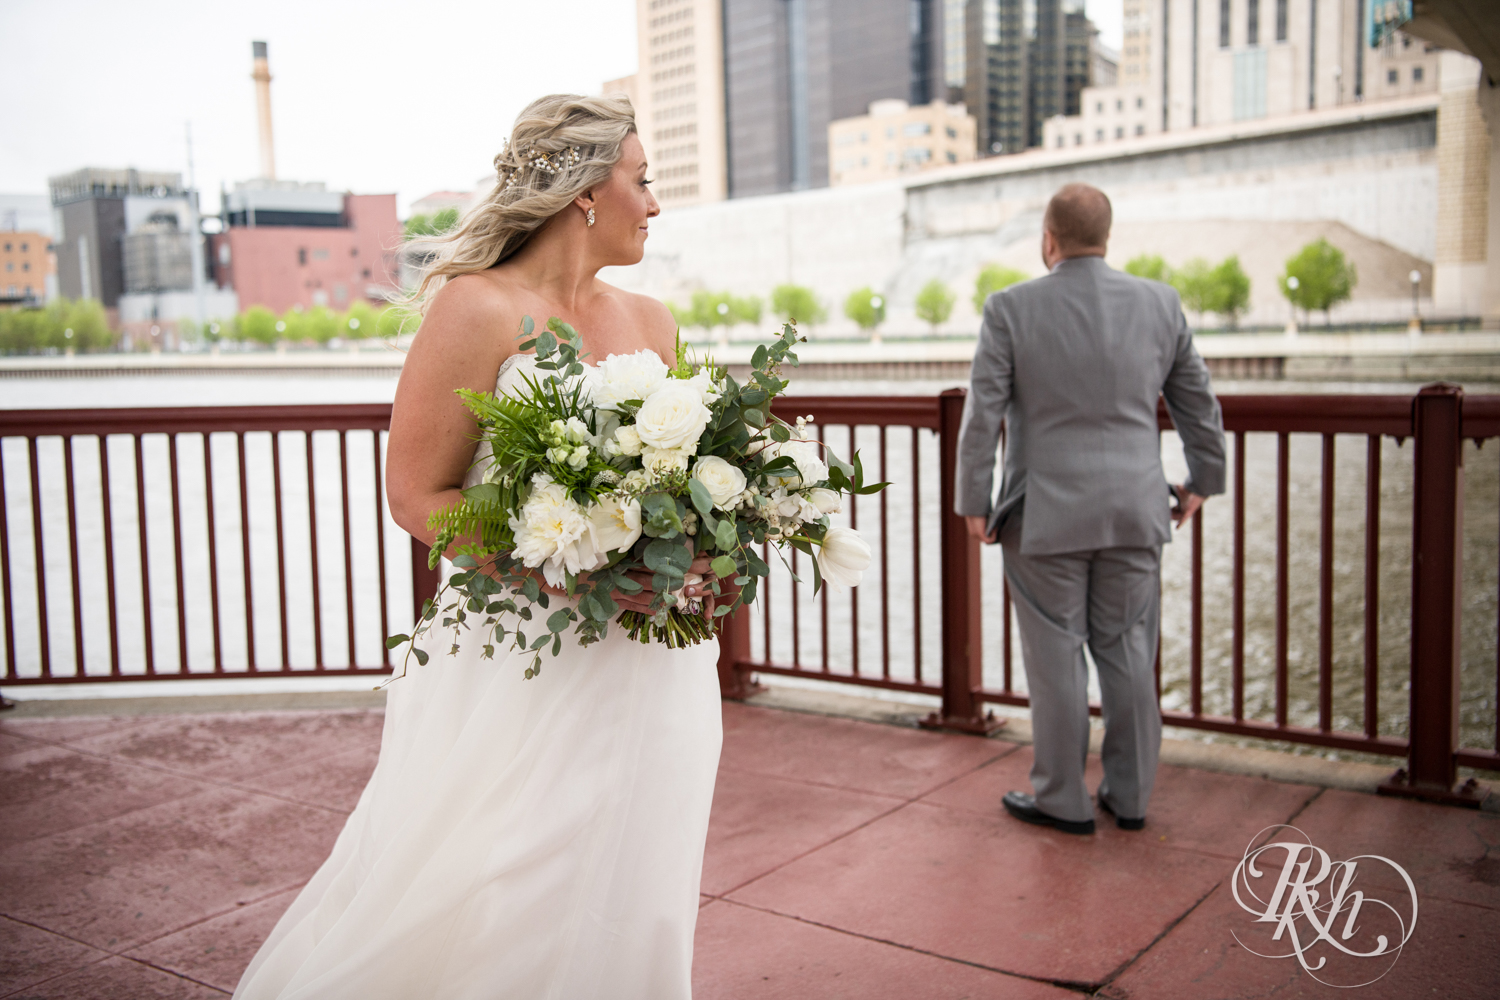 Shannon and Brian - Minnesota Wedding Photography - Raspberry Island - Minnesota Boat Club - RKH Images - Blog  (15 of 60).jpg